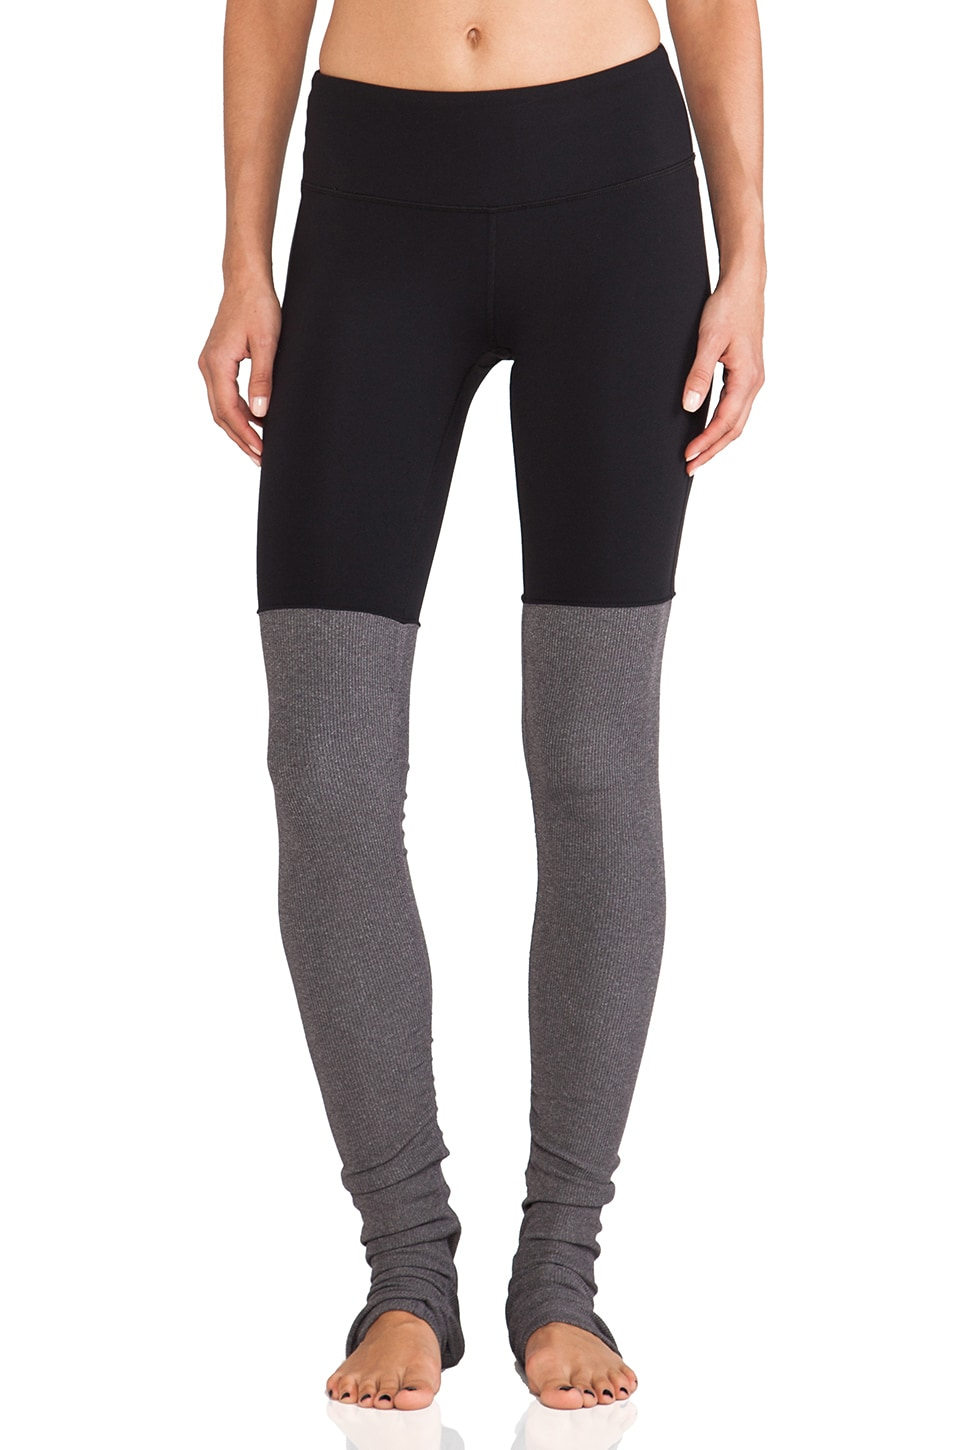 alo Goddess Ribbed Legging in Black & Stormy Heather